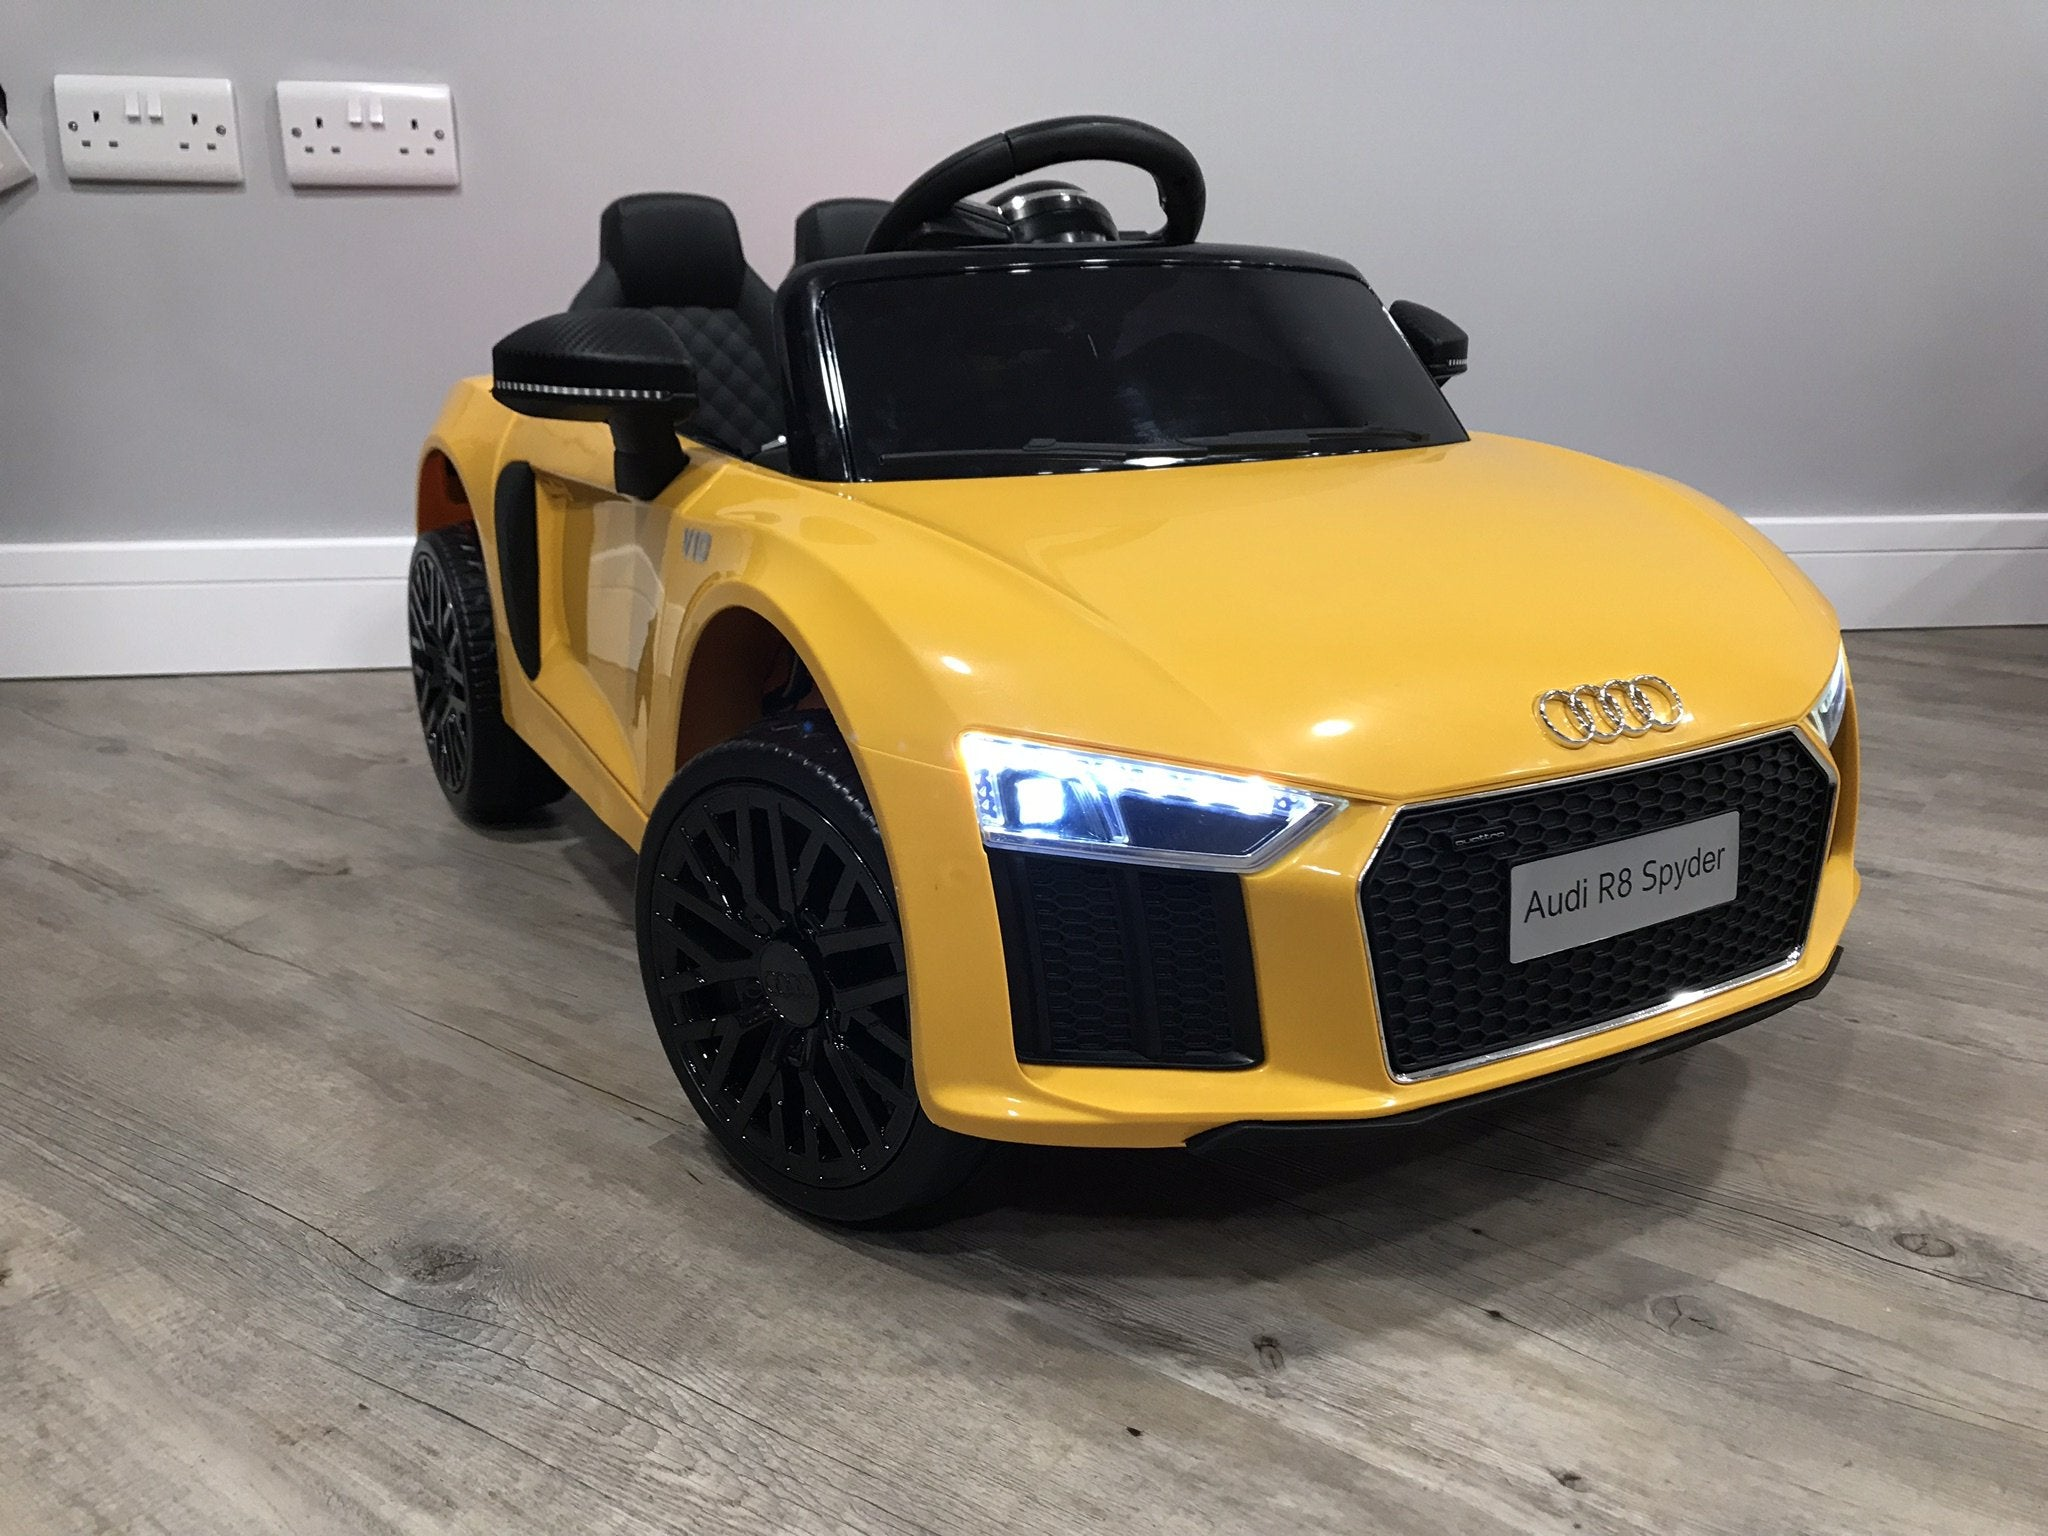 Audi R8 Spyder Super Sports Car 12v Electric Ride On Car In Yellow